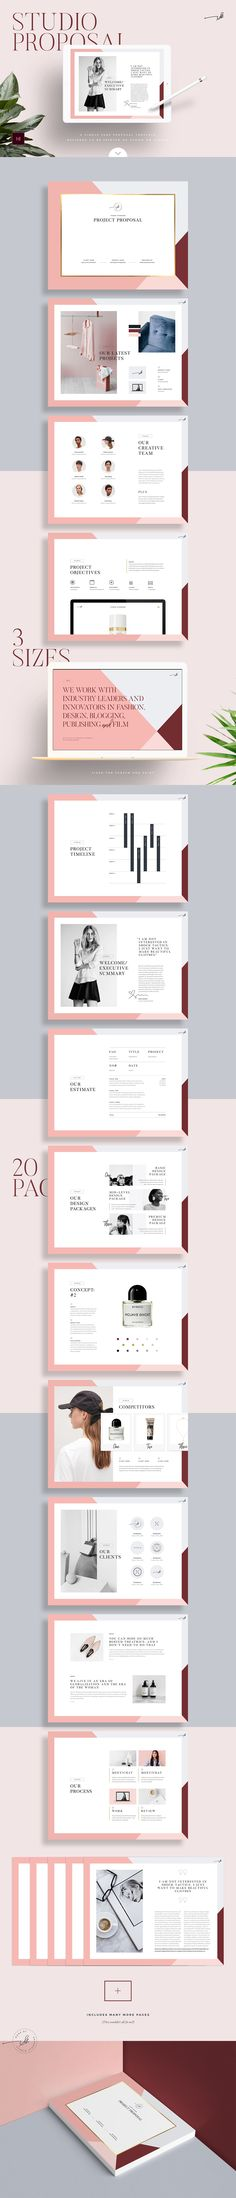 STUDIO Proposal on Behance